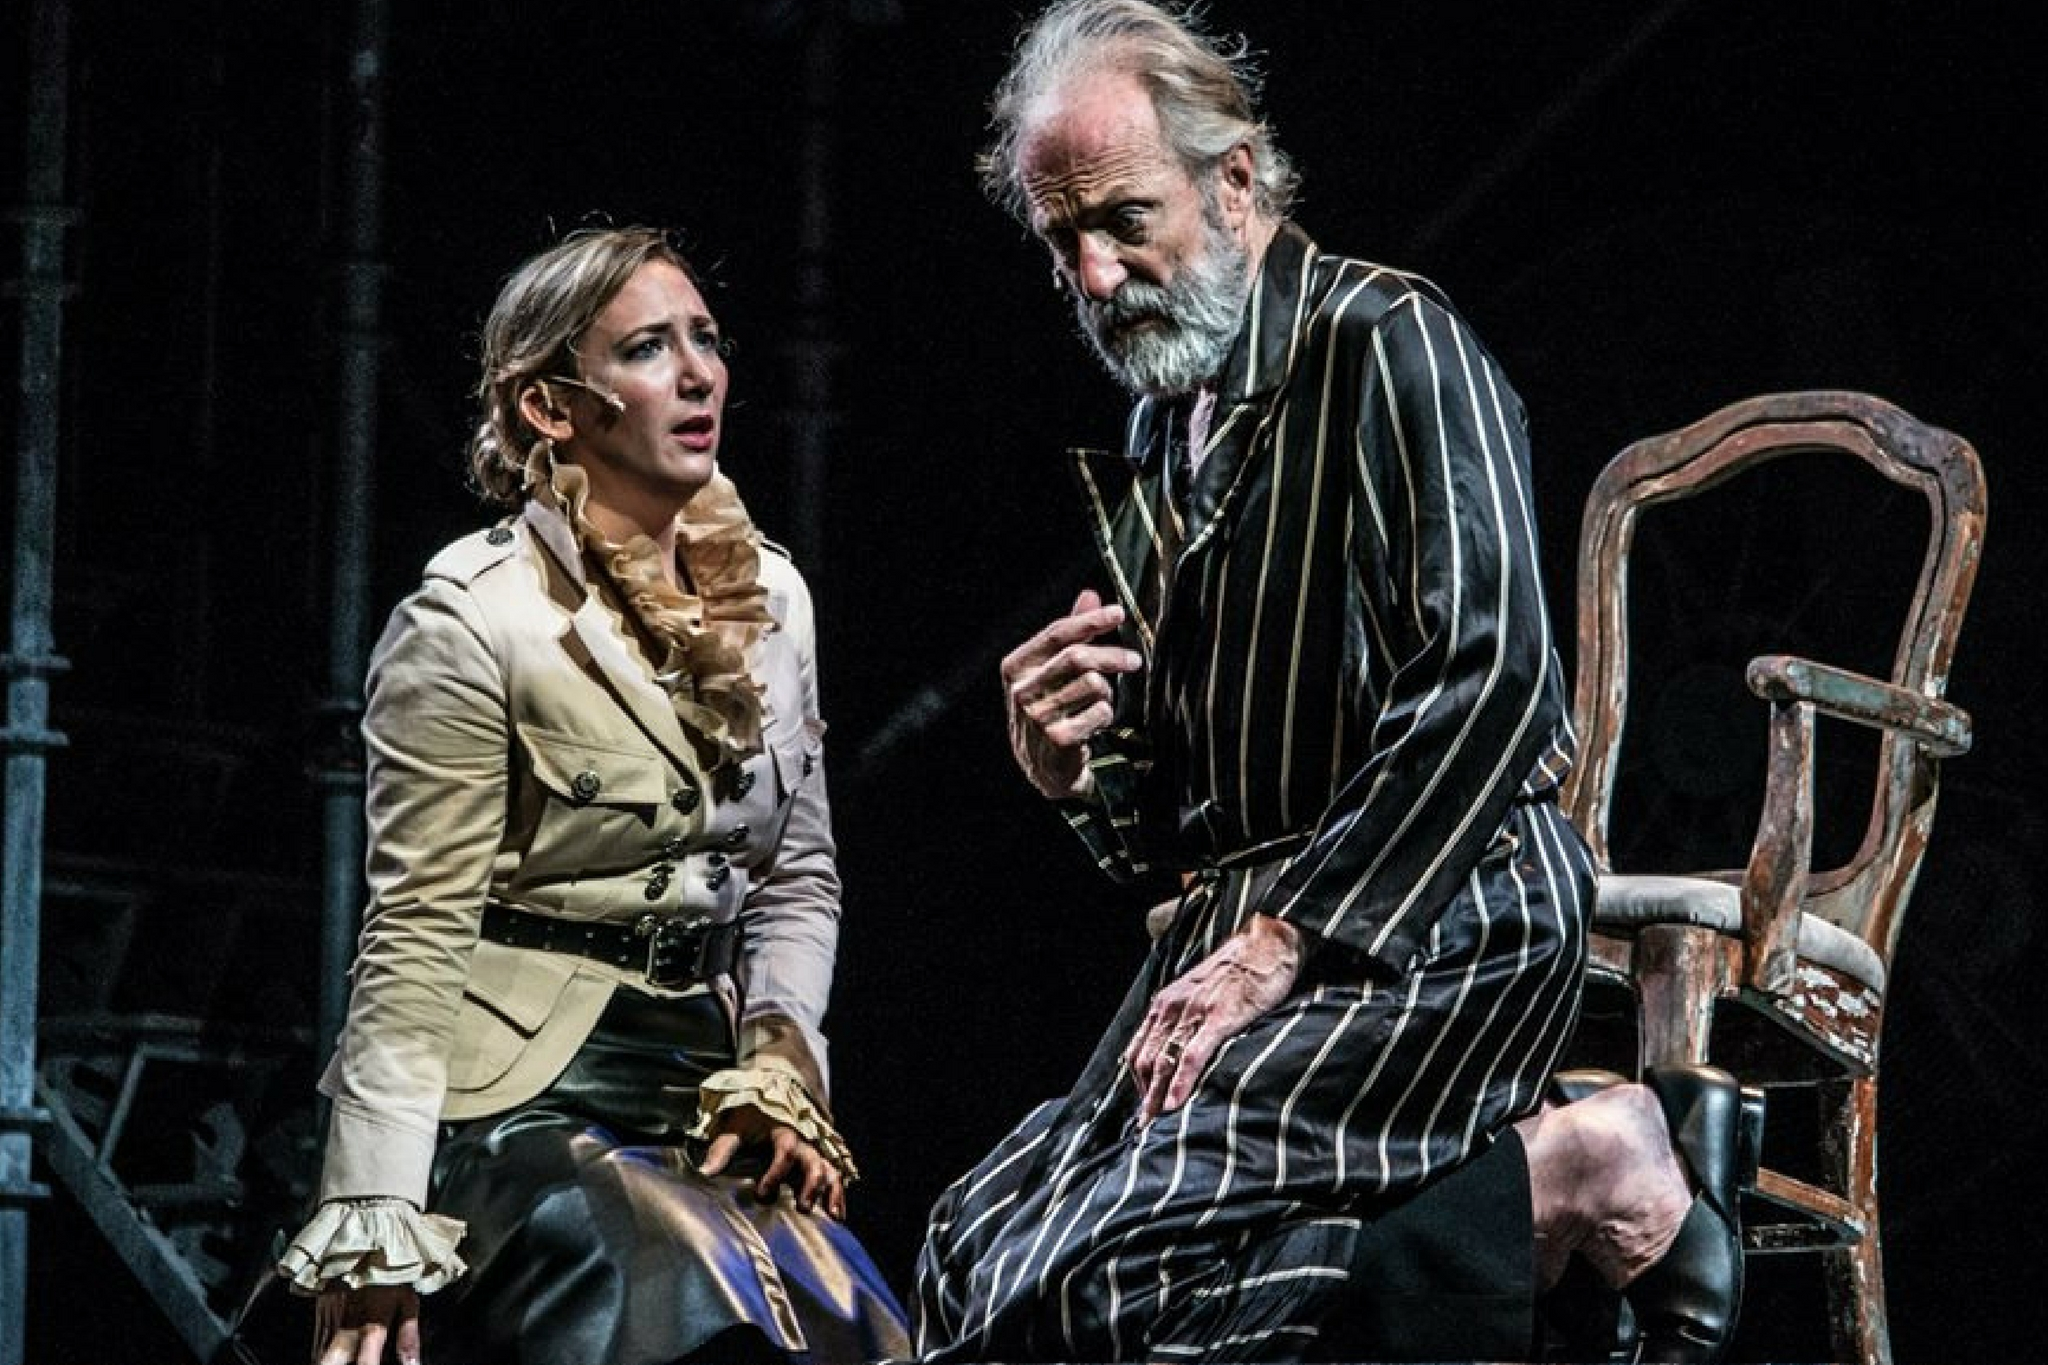 Libby McKnight (Cordelia) and Will Lyman (King Lear) in King Lear, Shakespeare on the Common 2015-Photo by Alex Portenko